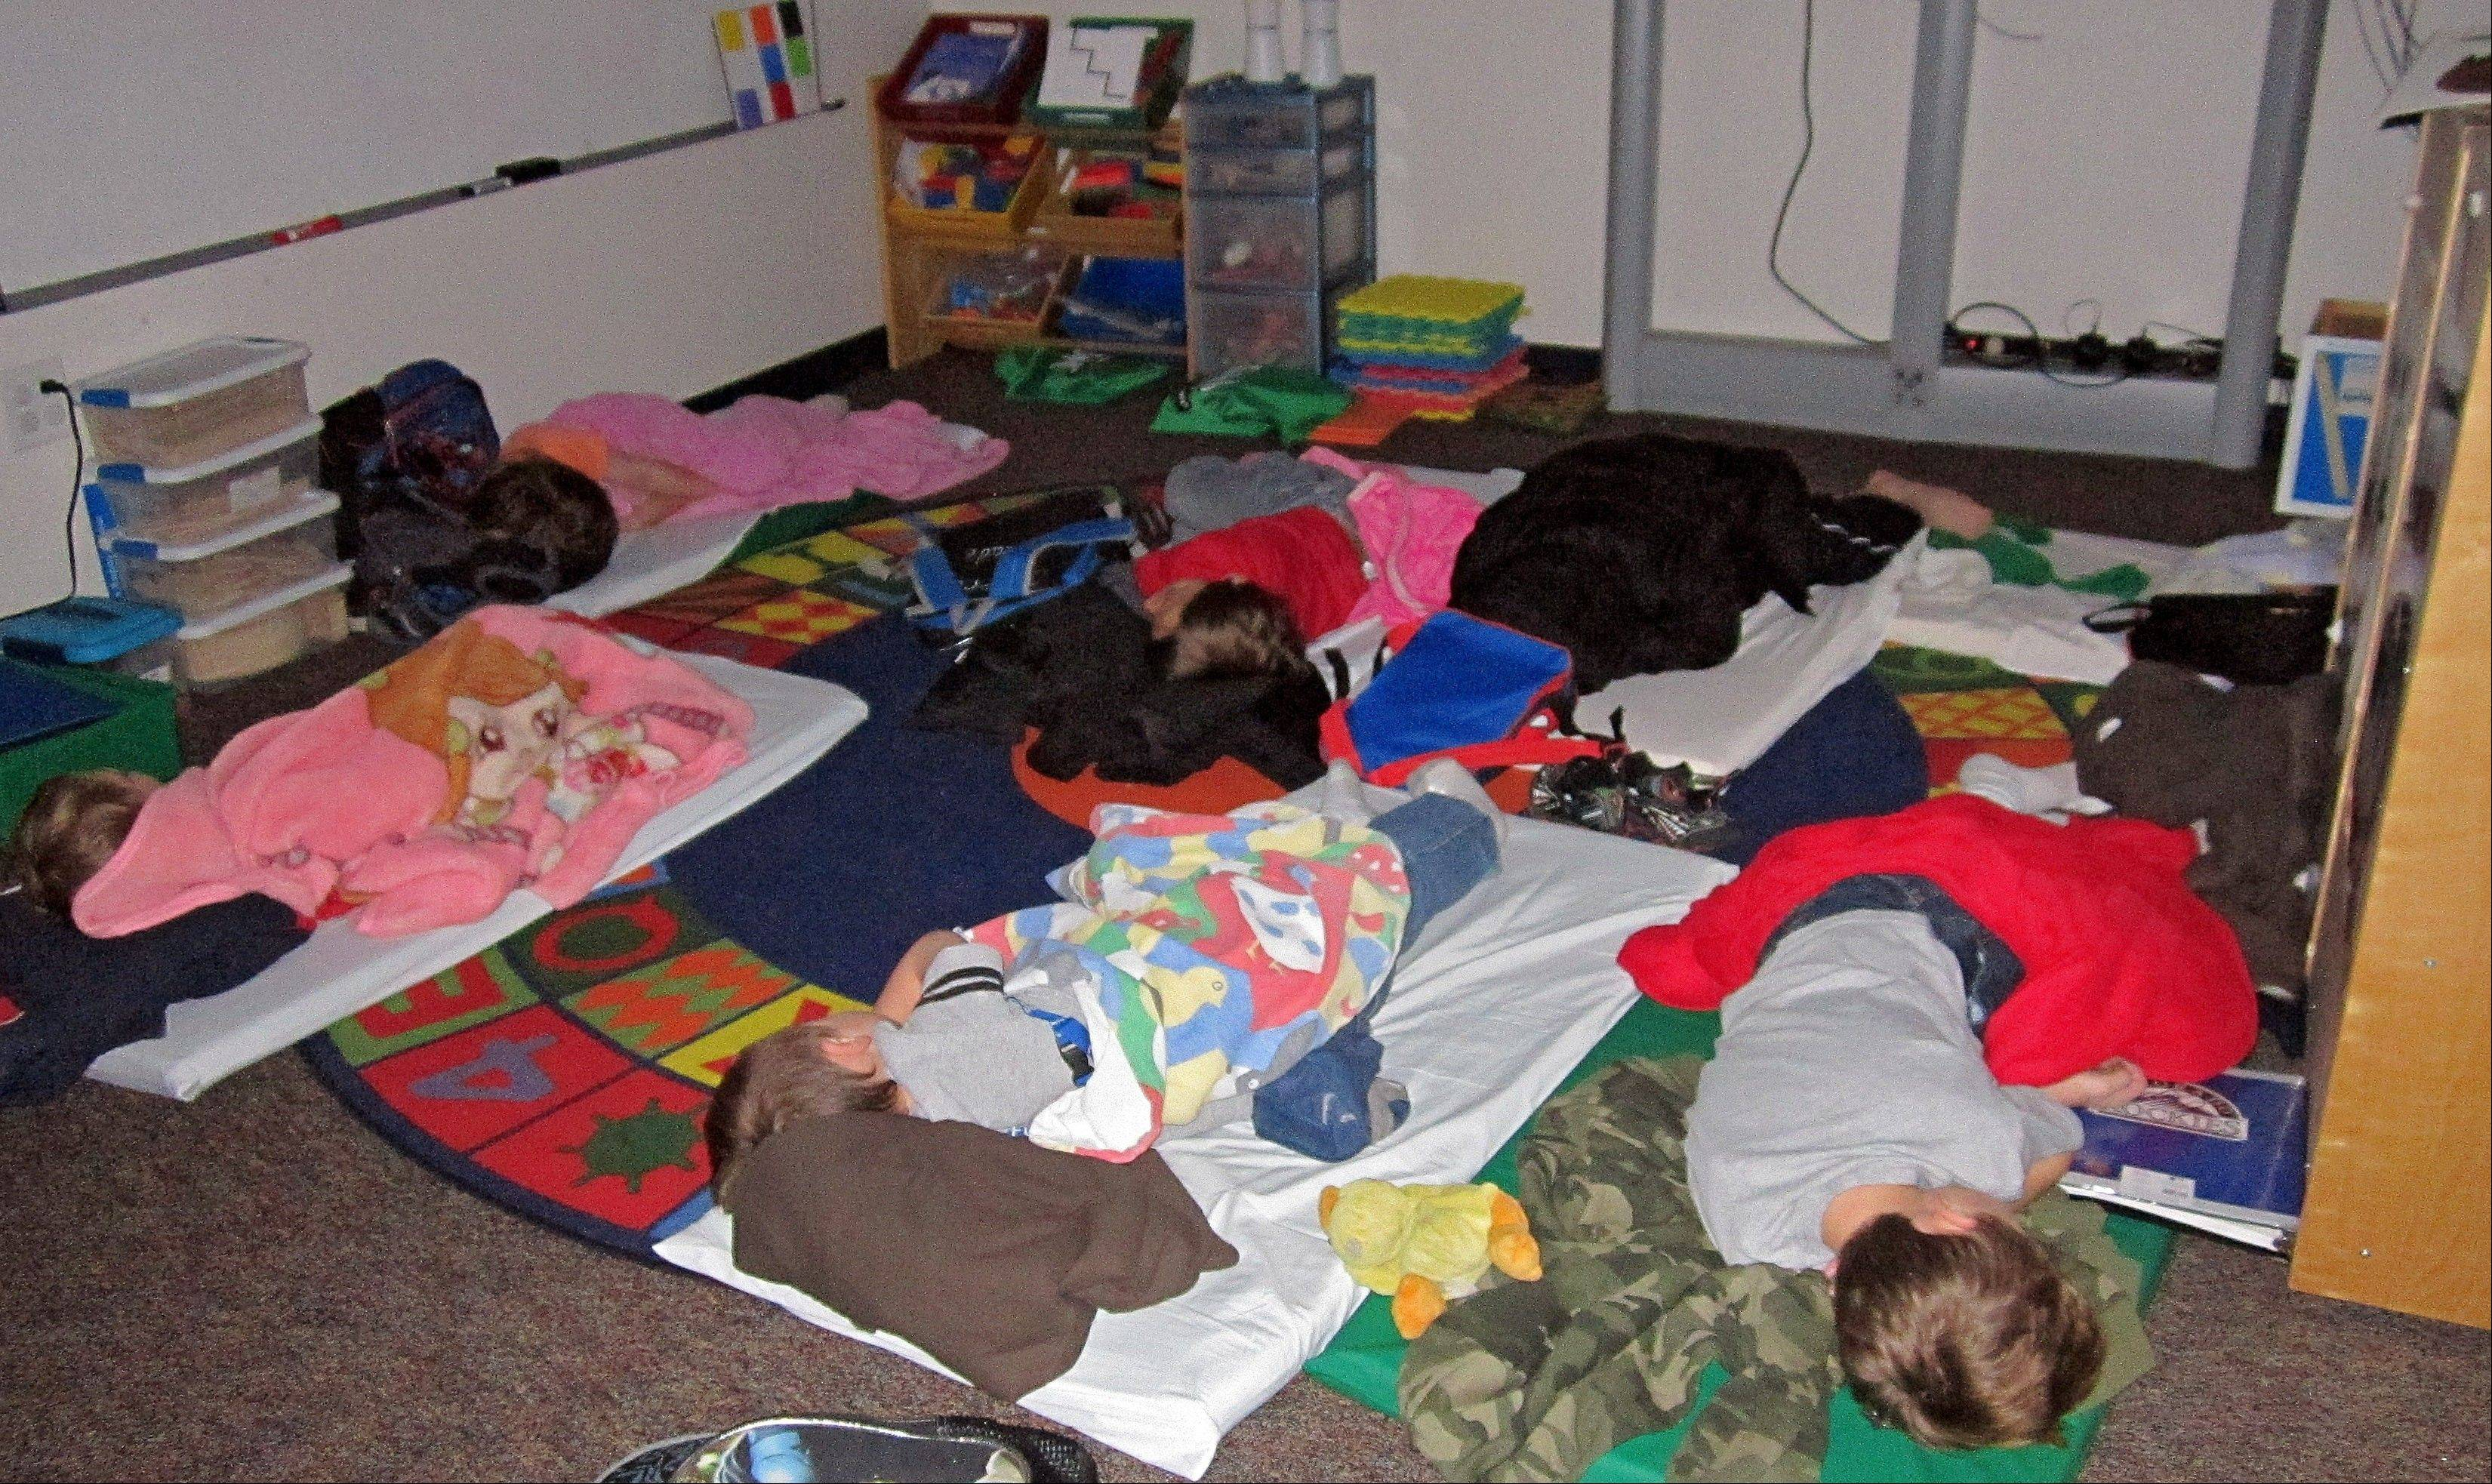 In this photo provided by Sharon Webb, principal of Miami-Yoder School, students sleep on the floor at the school on Wednesday in Yoder, Colo. About 60 students were forced to spend the night at the school after snow drifts closed roads in the area. The students went home later Wednesday after the roads were cleared.